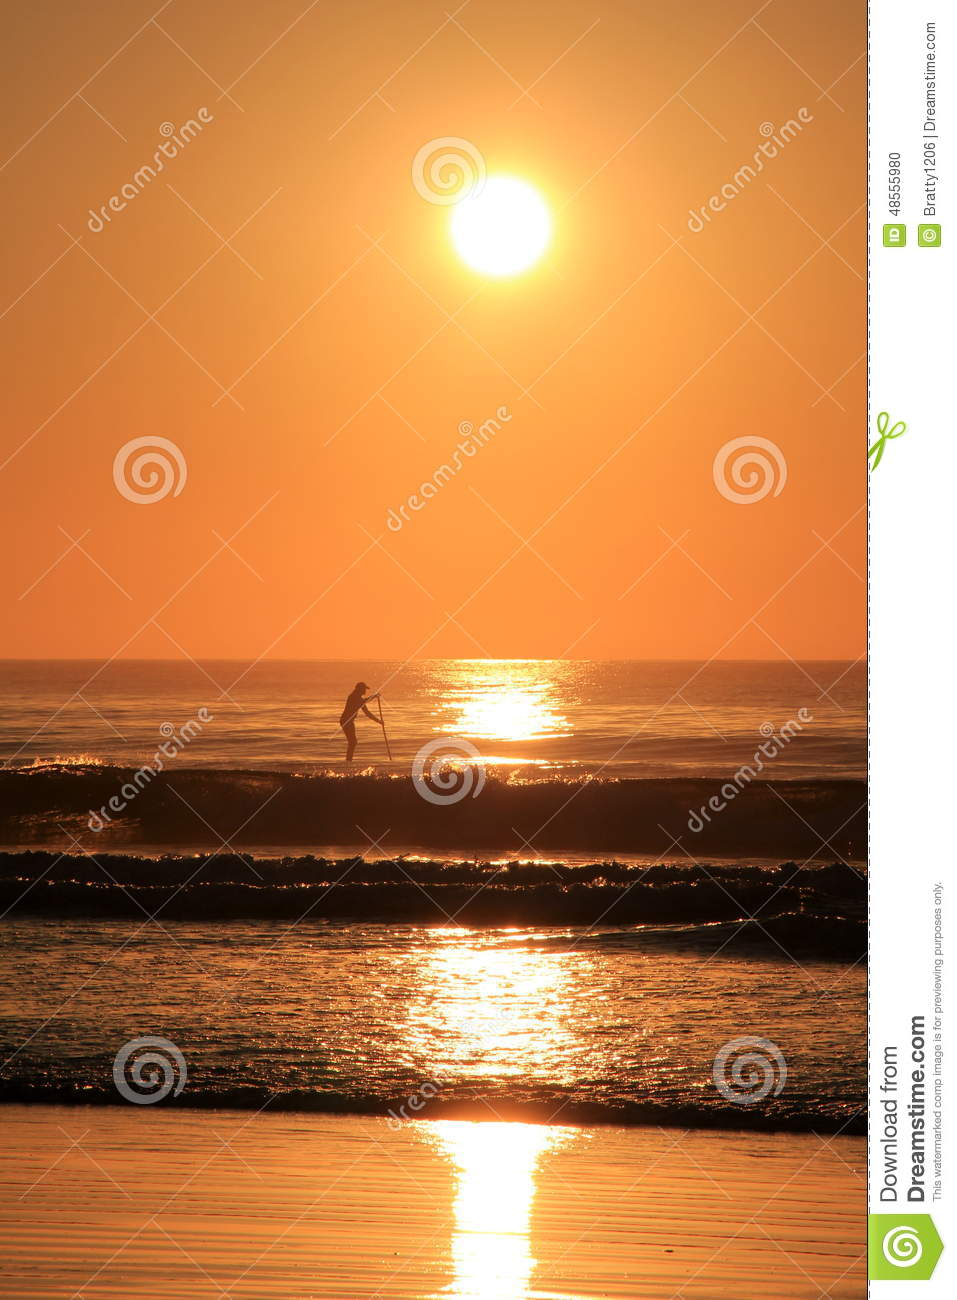 Peaceful Scene Of Early Morning And Paddle Boarder Stock Photo